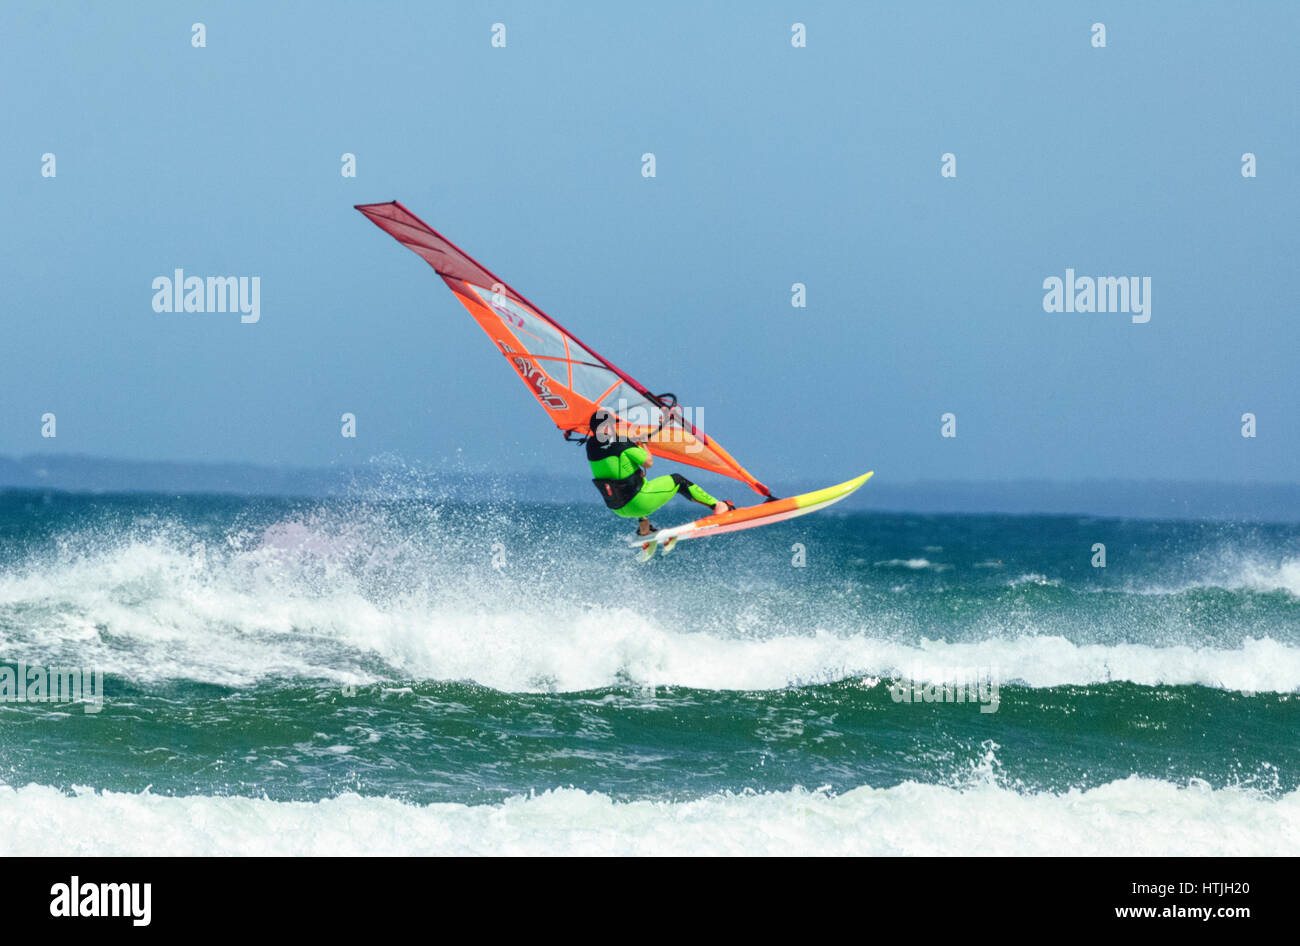 Windsurfer springen über eine große Welle am Seven Mile Beach, Gerroa, Illawarra Coast, New-South.Wales, NSW, Australien Stockfoto